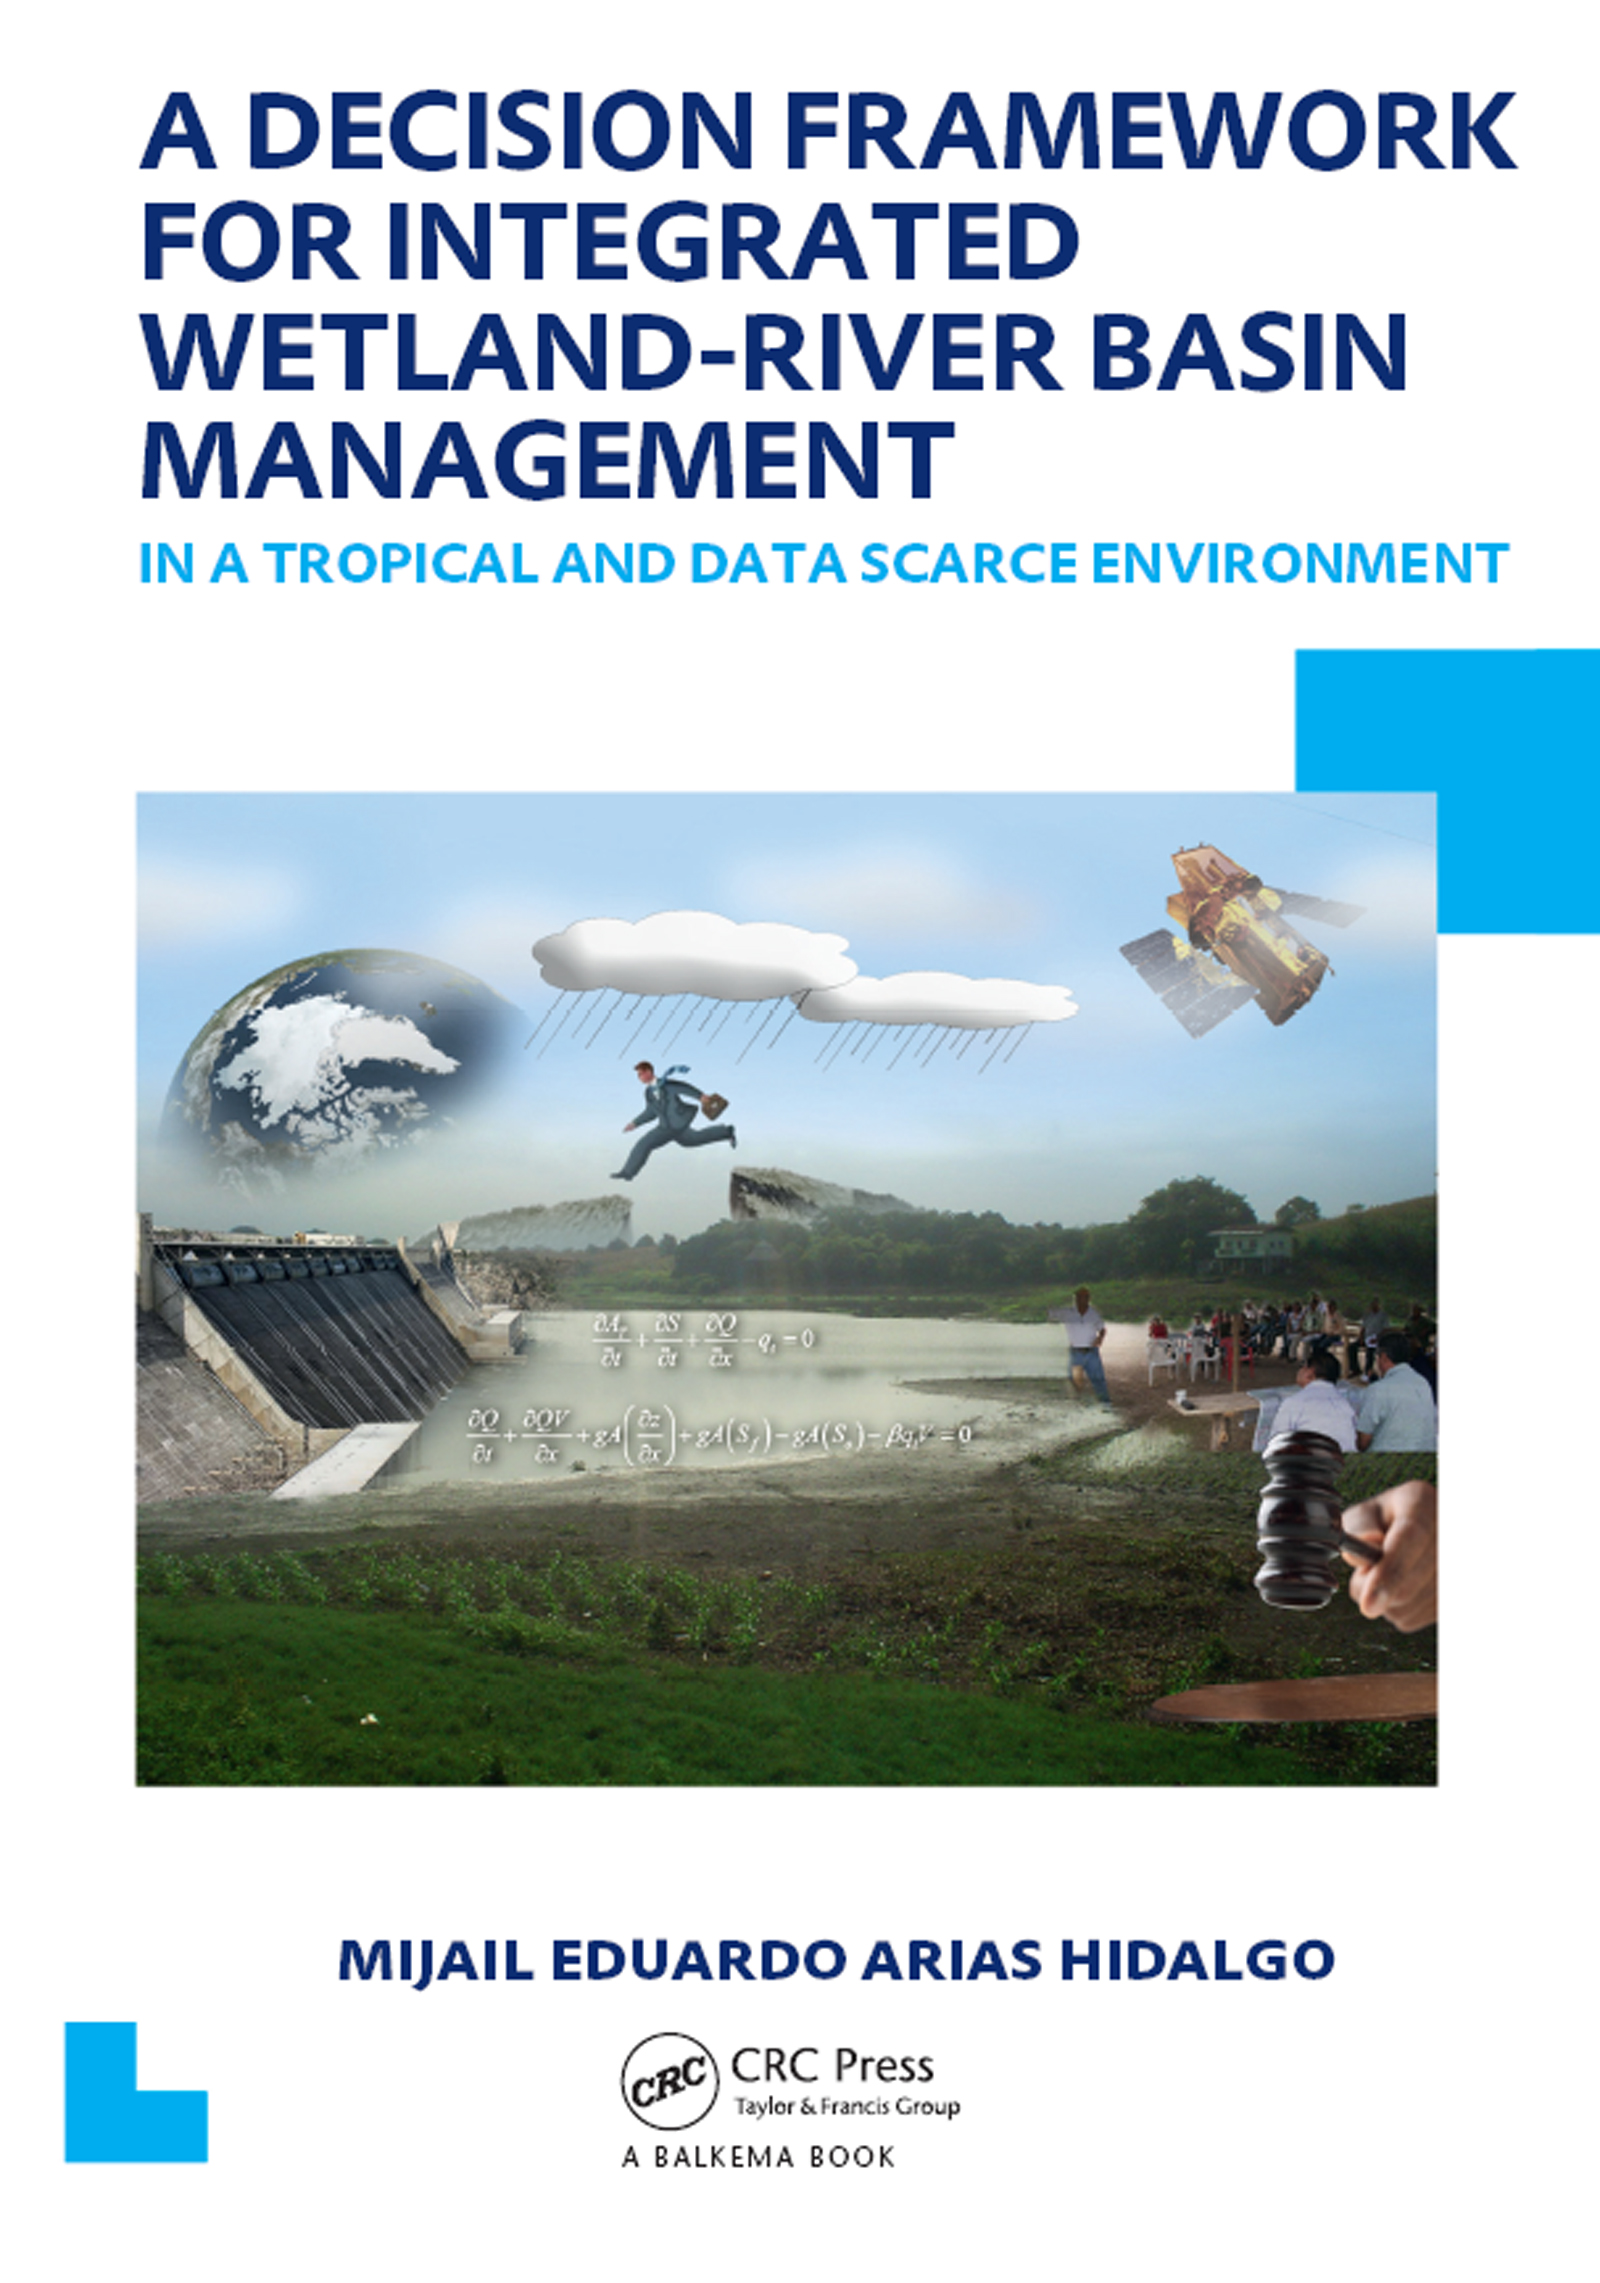 A Decision Framework for Integrated Wetland-River Basin Management in a Tropical and Data Scarce Environment